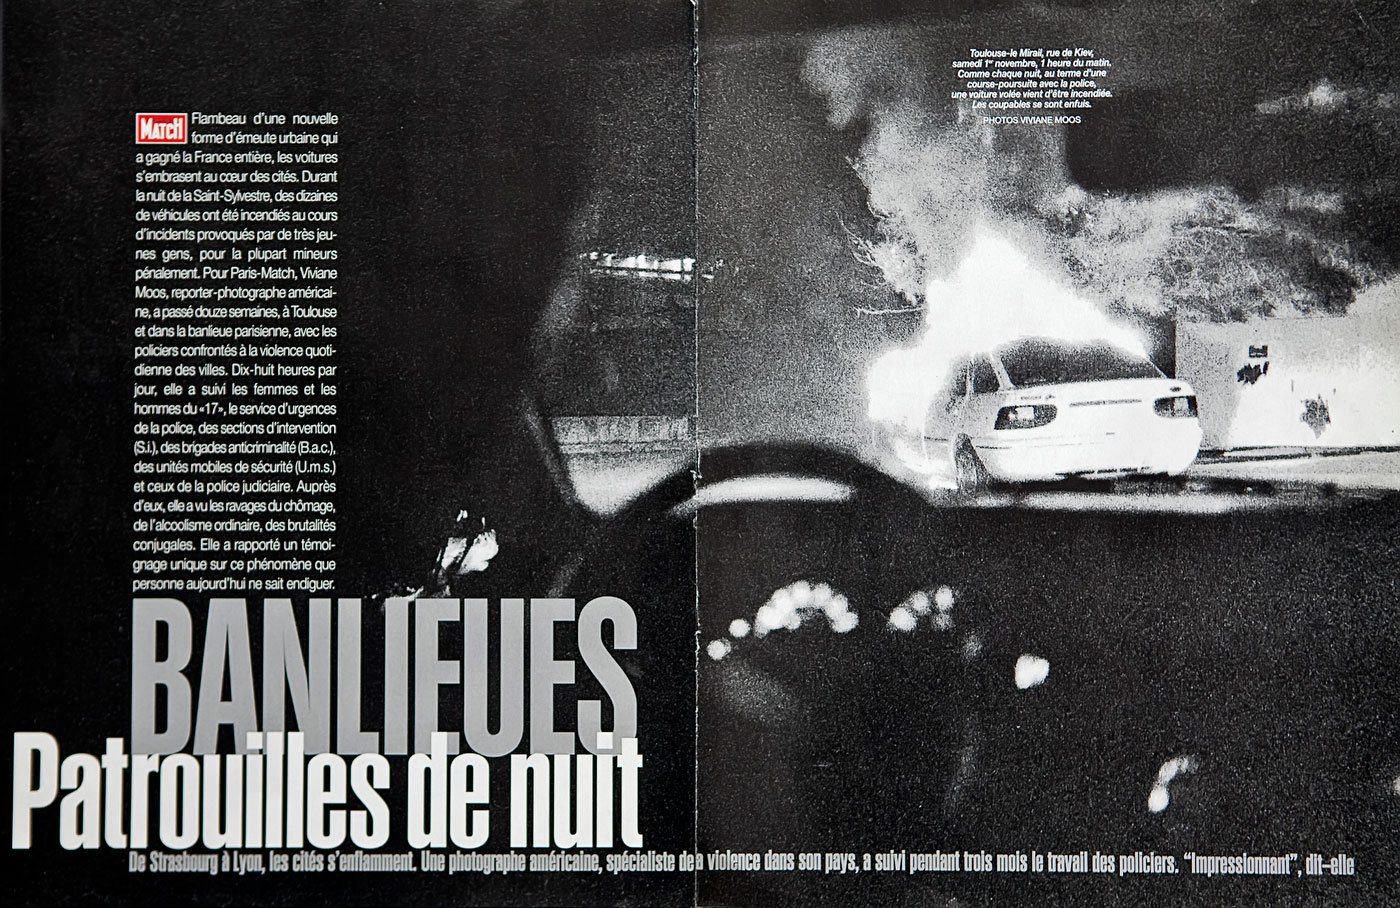 Police Work, Social Unrest. Paris Match, France : TEAR SHEETS : Viviane Moos |  Documentary Photographer